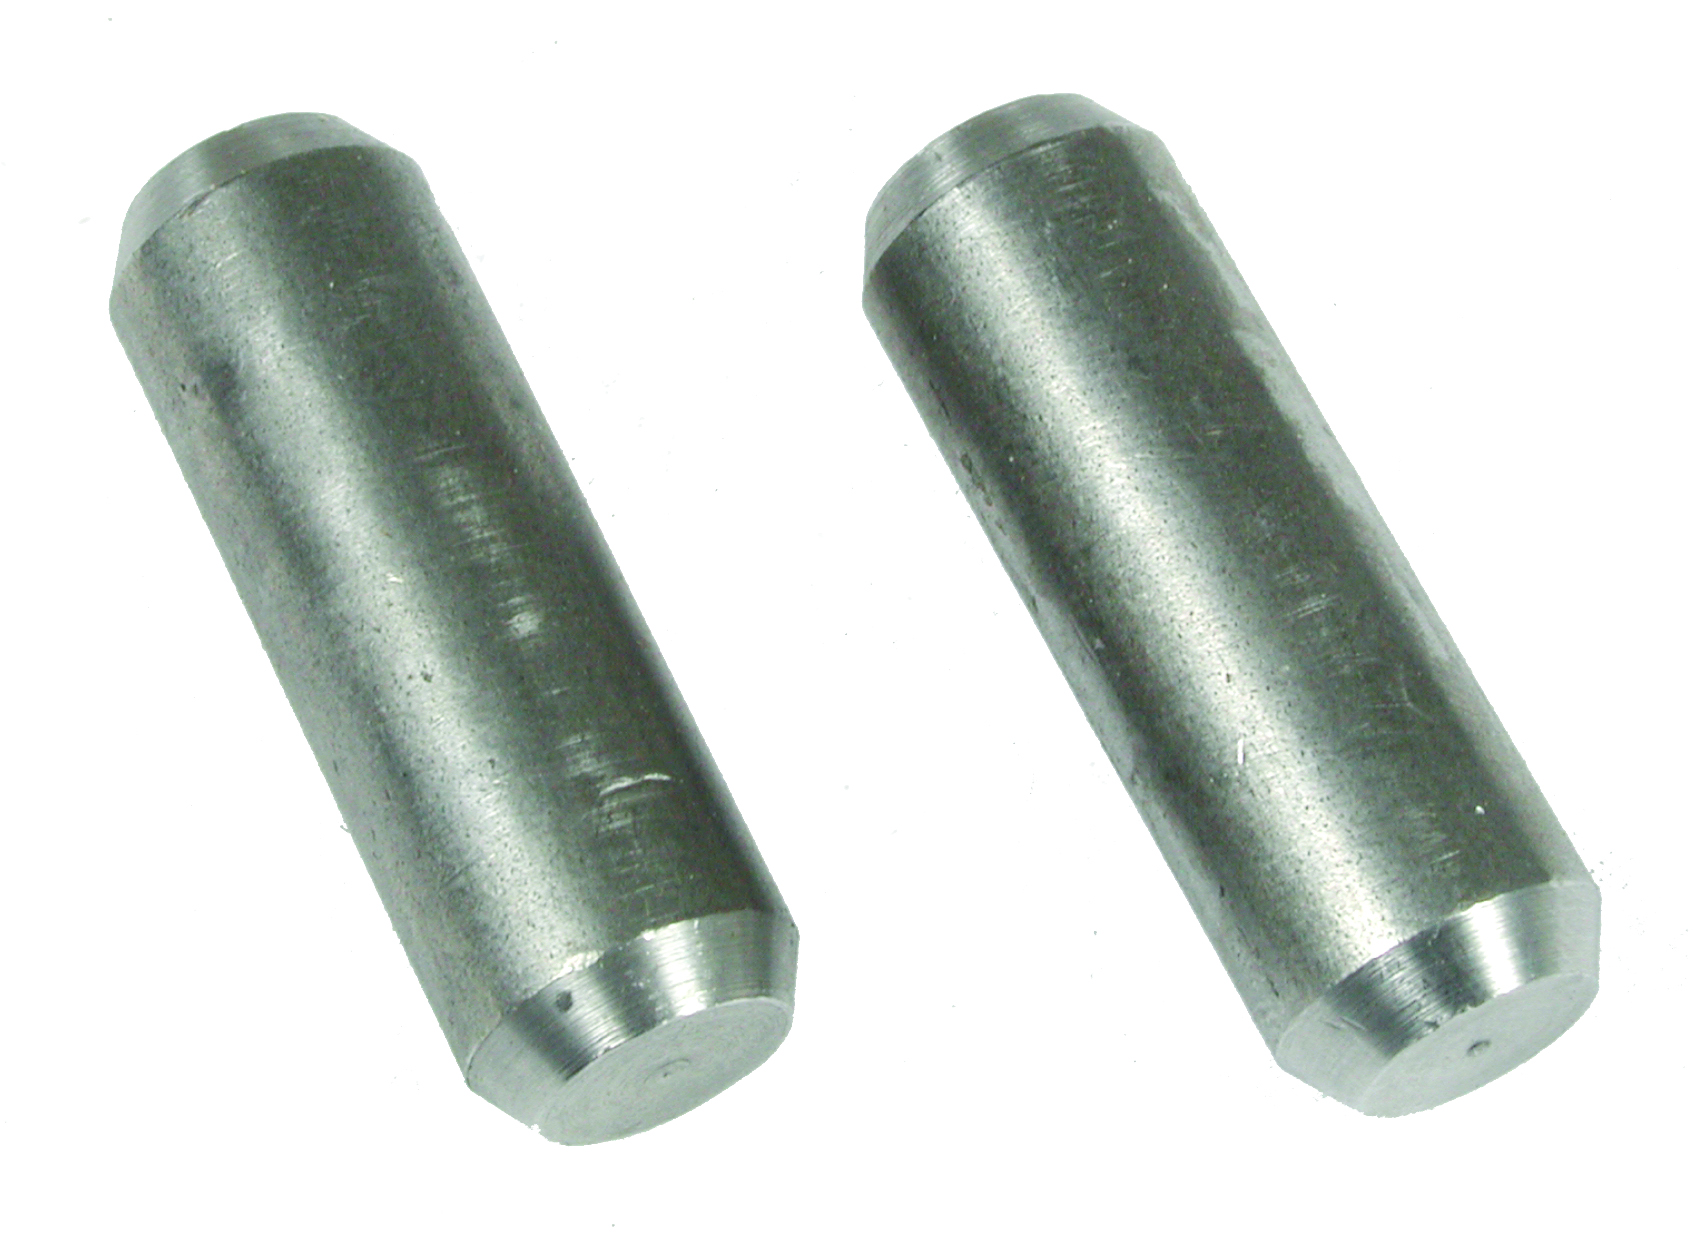 15945 Lakewood Auto Trans Bellhousing Dowel Pin For Use With Ford And